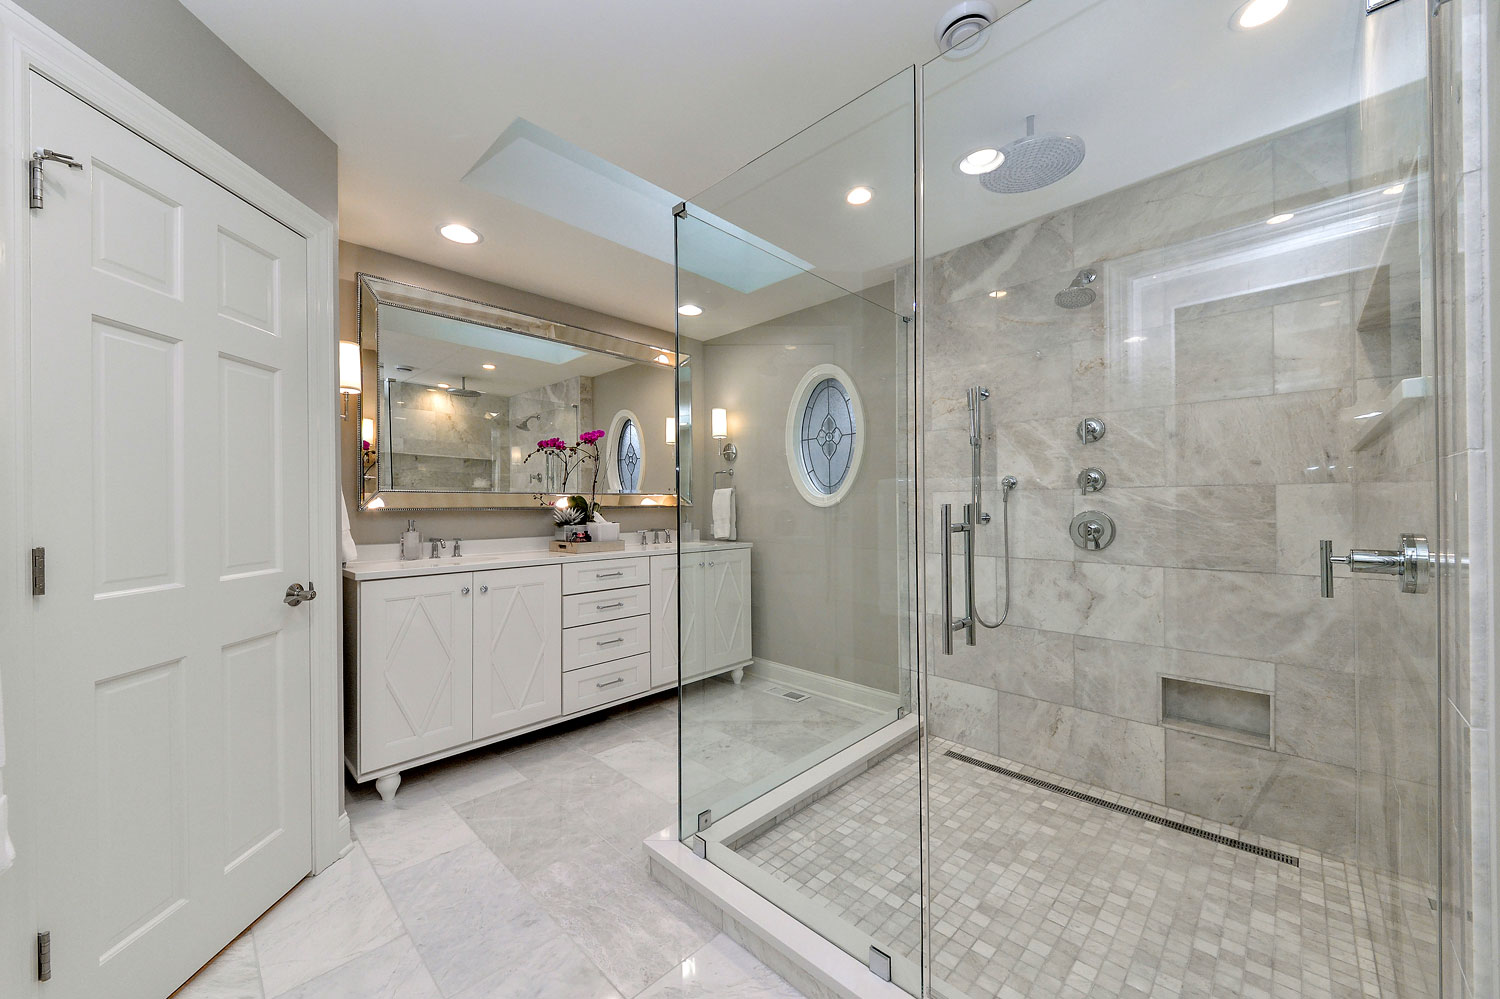 Bobby lisa 39 s master bathroom remodel pictures home for Bathroom design build